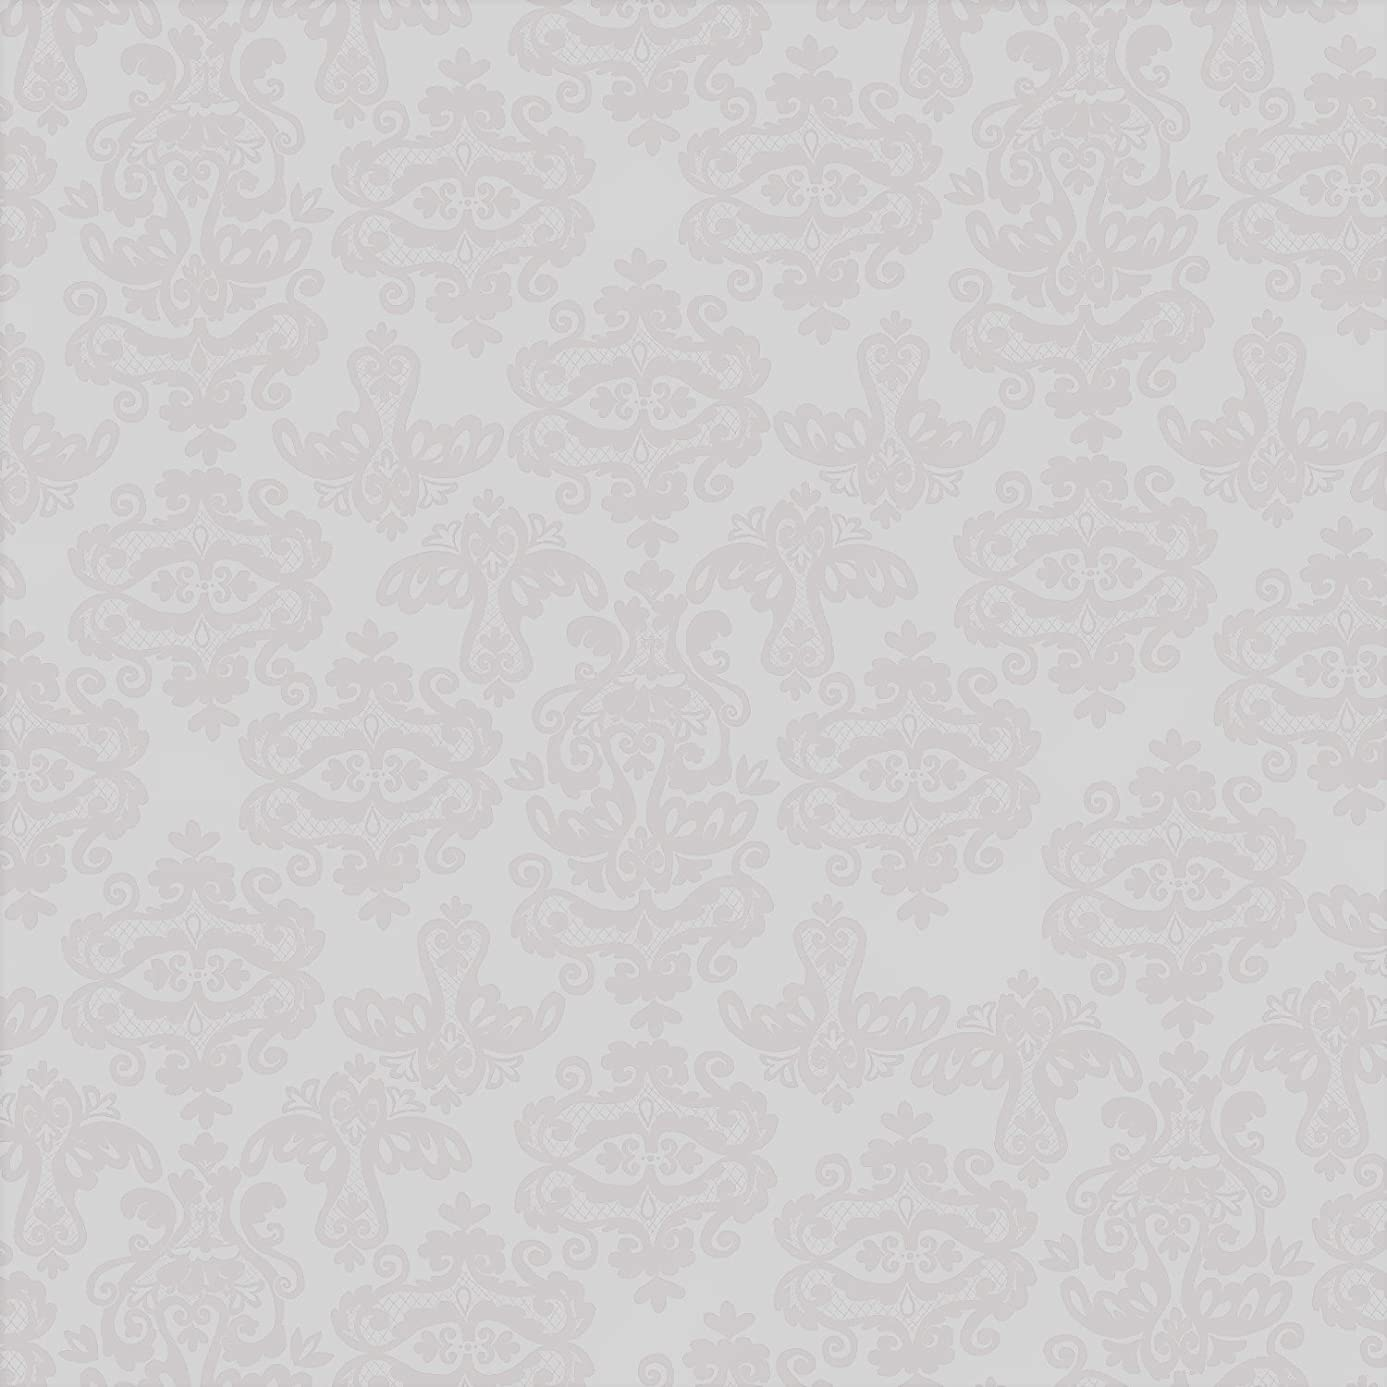 Jillson Roberts 6 Roll-Count Premium Gift Wrap Available in 16 Designs, Damask Gold